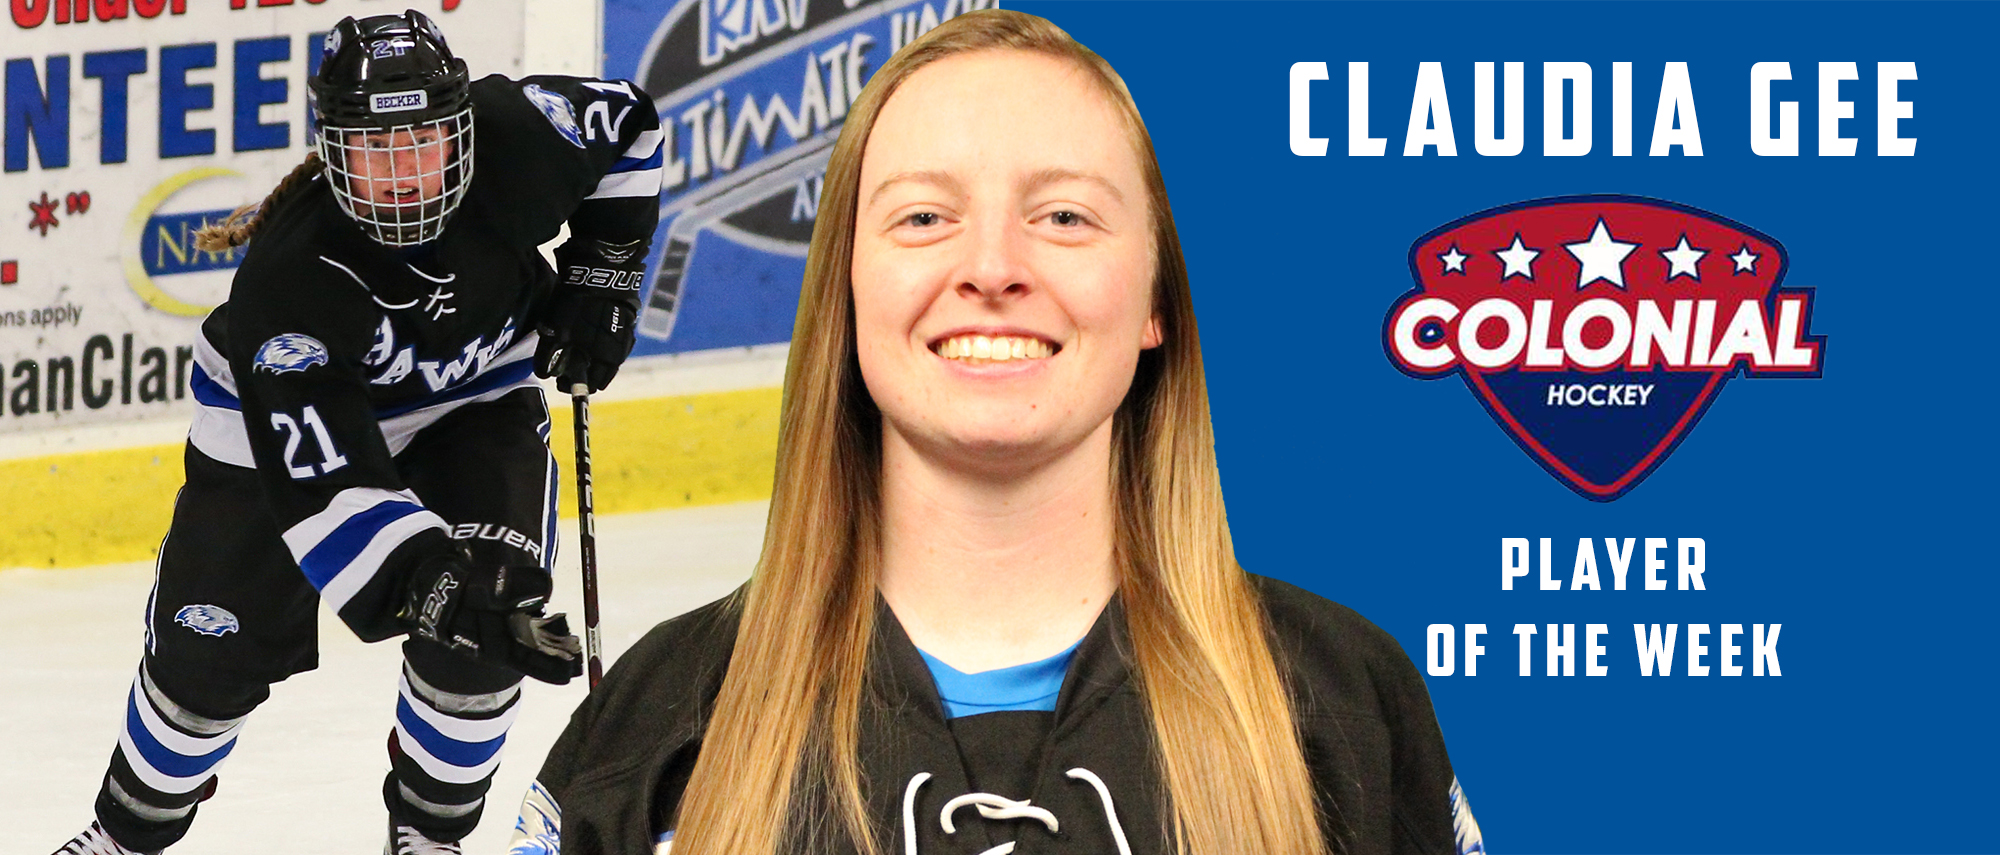 Claudia Gee, Colonial Hockey Conference Player of the Week (Dec. 10)